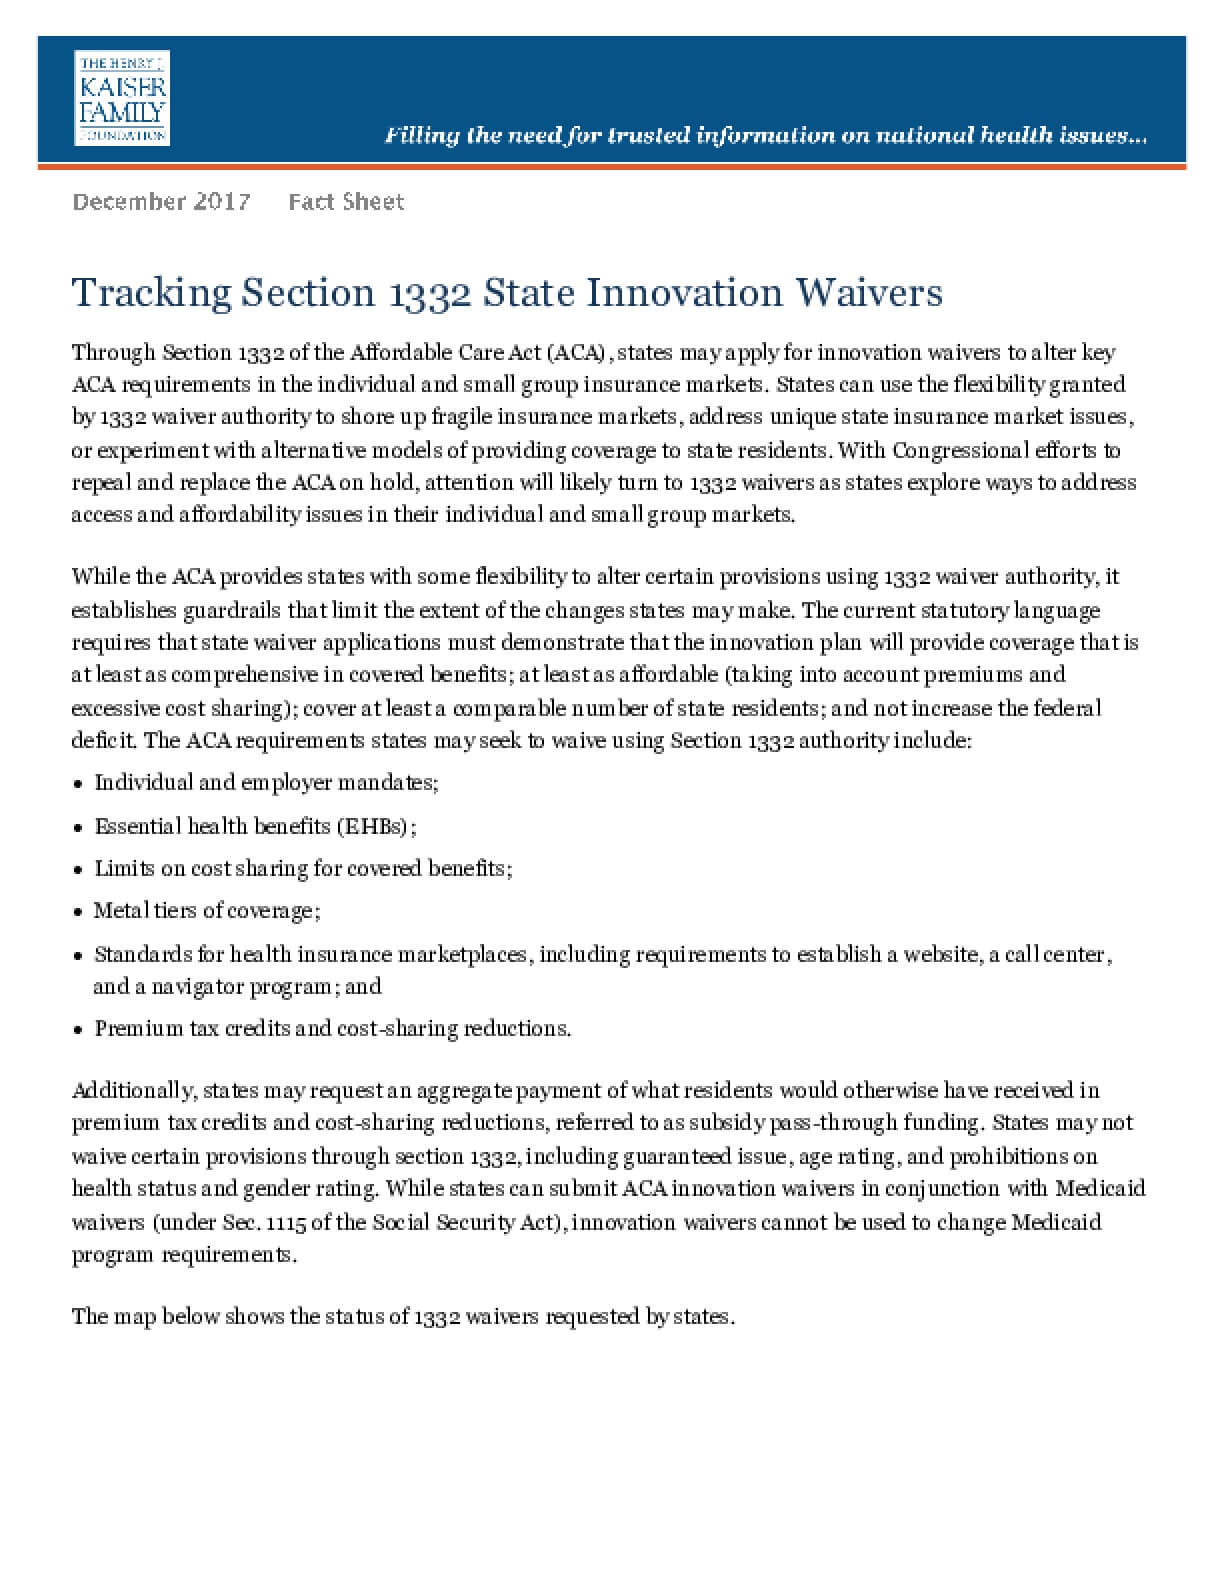 Tracking Section 1332 State Innovation Waivers